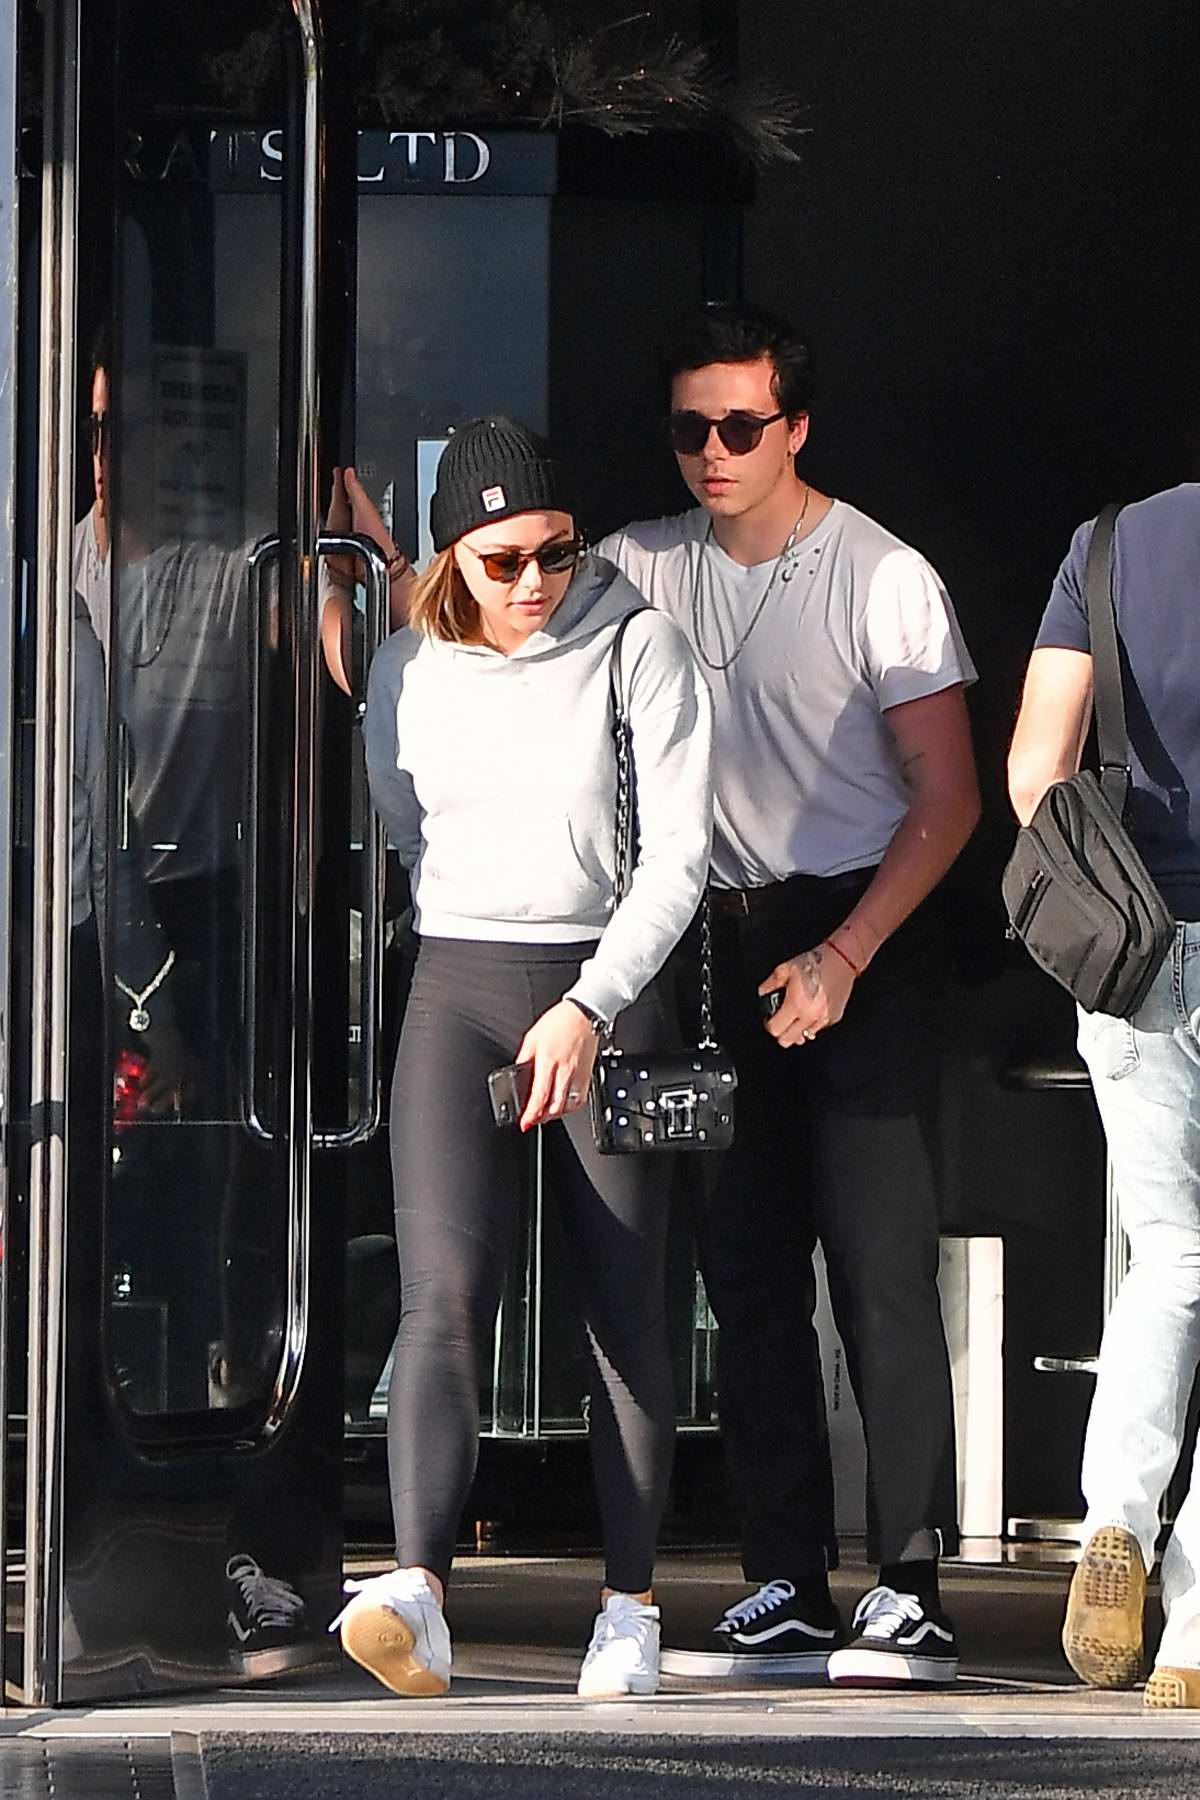 Chloe Grace Moretz and Brooklyn Beckham leave XIV Karats jewelry store in Beverly Hills, Los Angeles